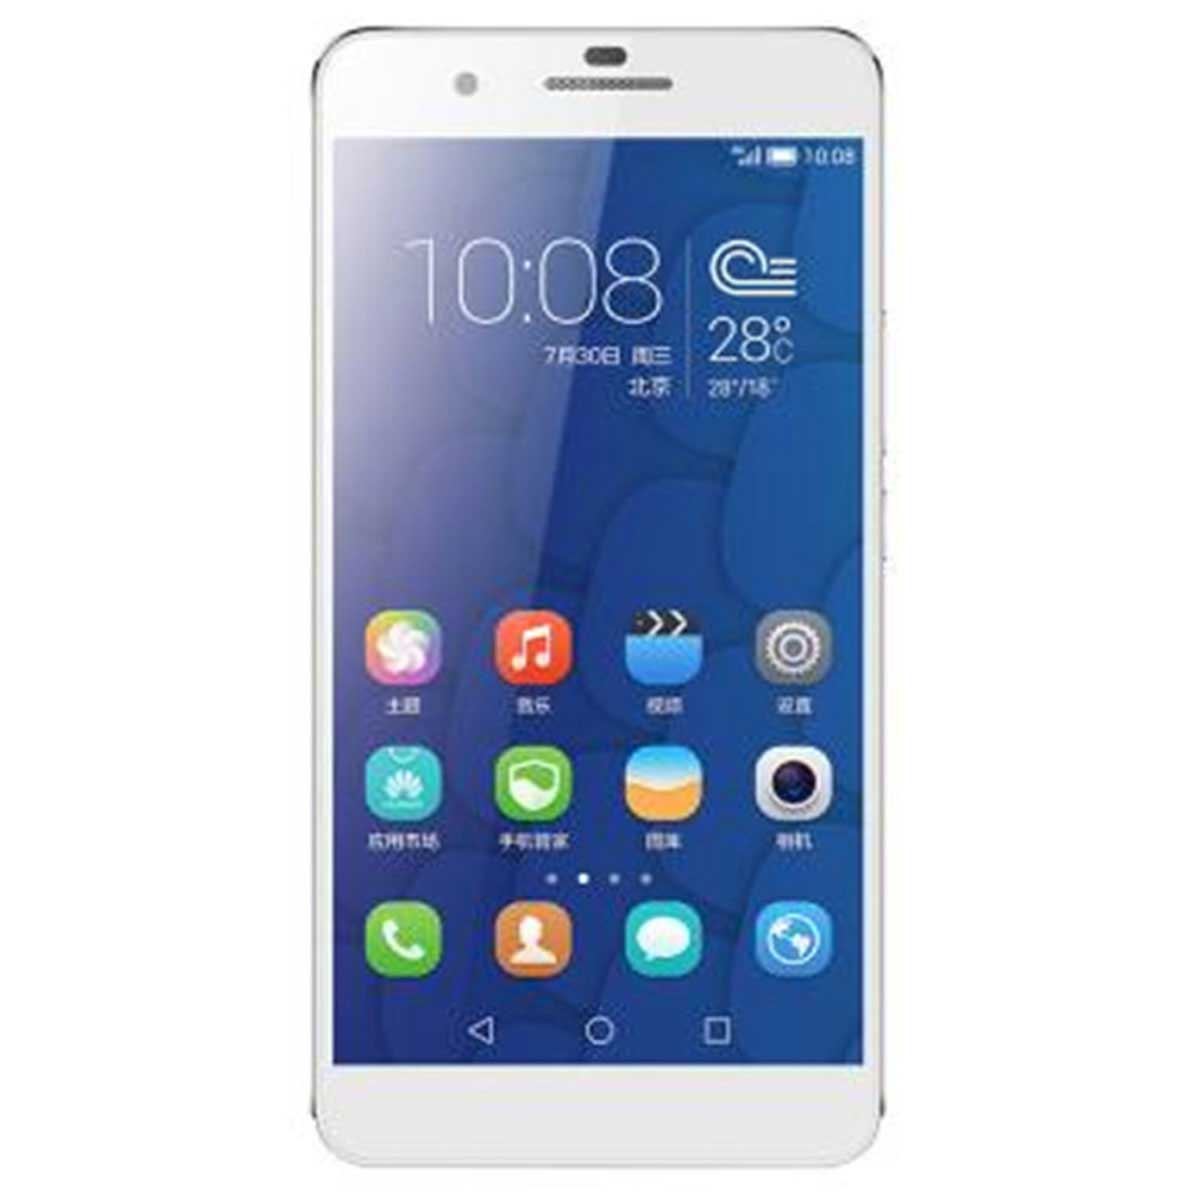 Huawei Honor 6 Plus Android 4.4 4G Phone w/ 3GB RAM, 16GB ROM - Silver